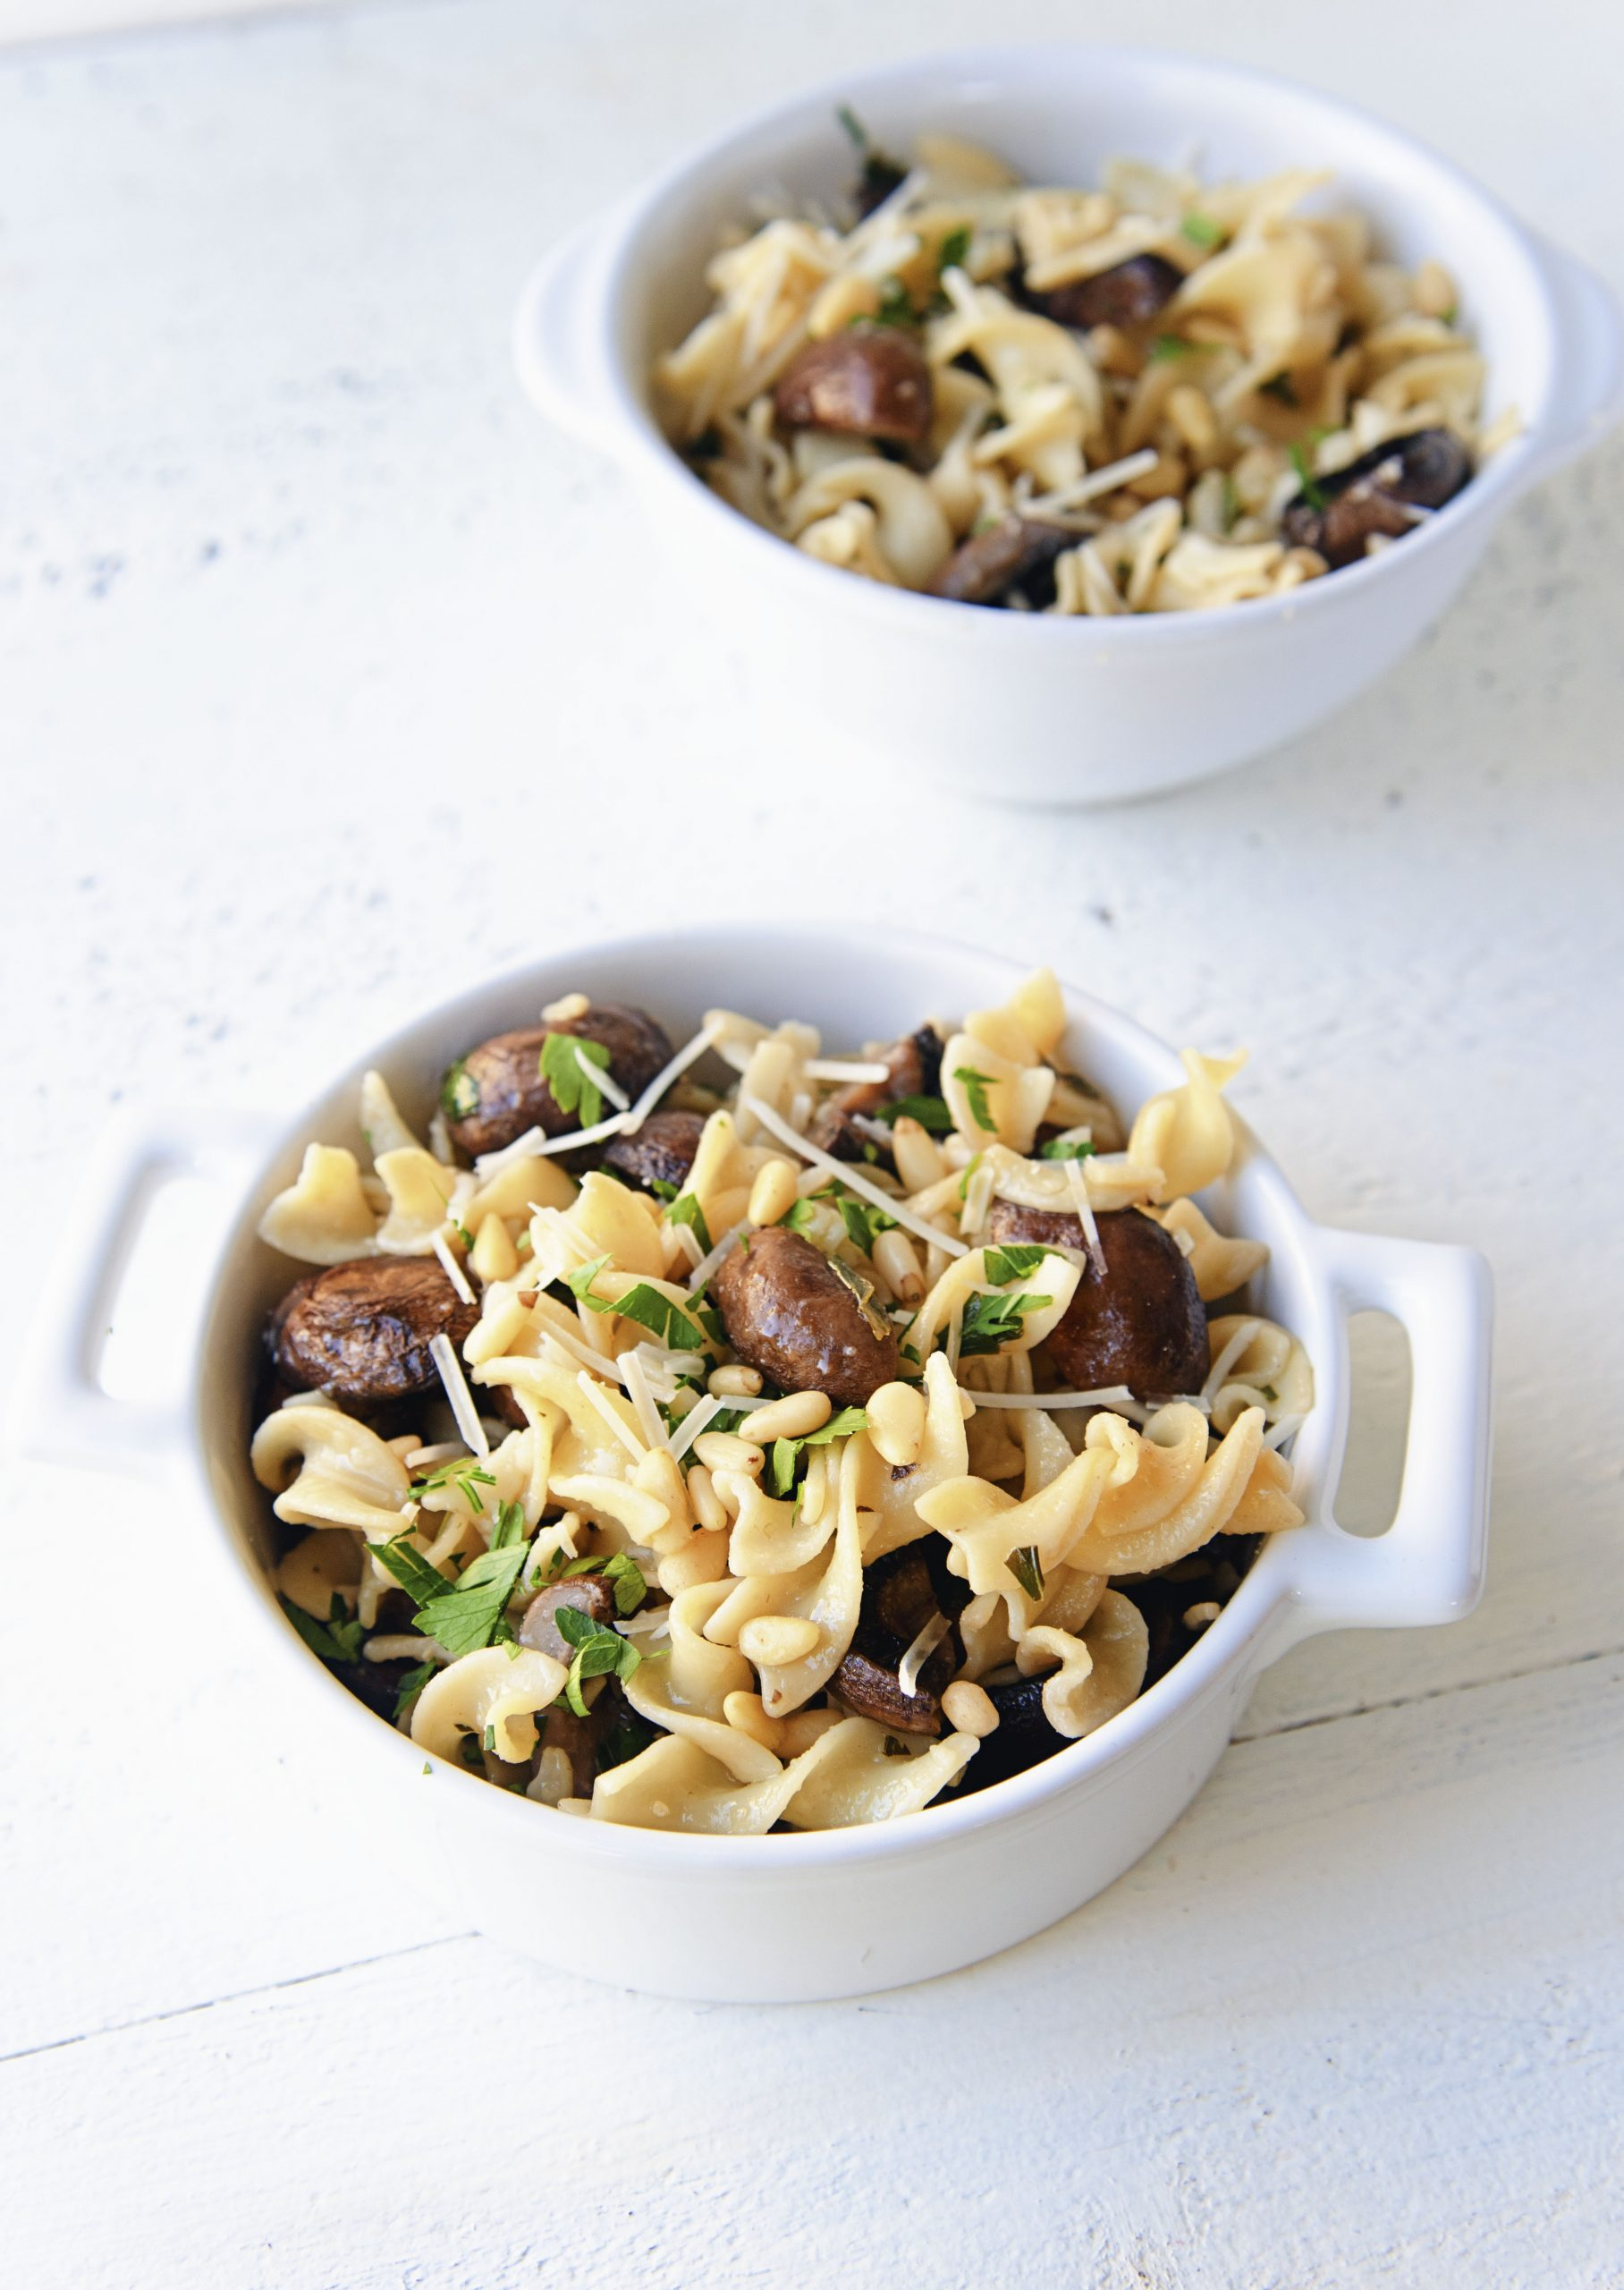 Two bowls of Roasted Mushroom Lemon Butter Pasta